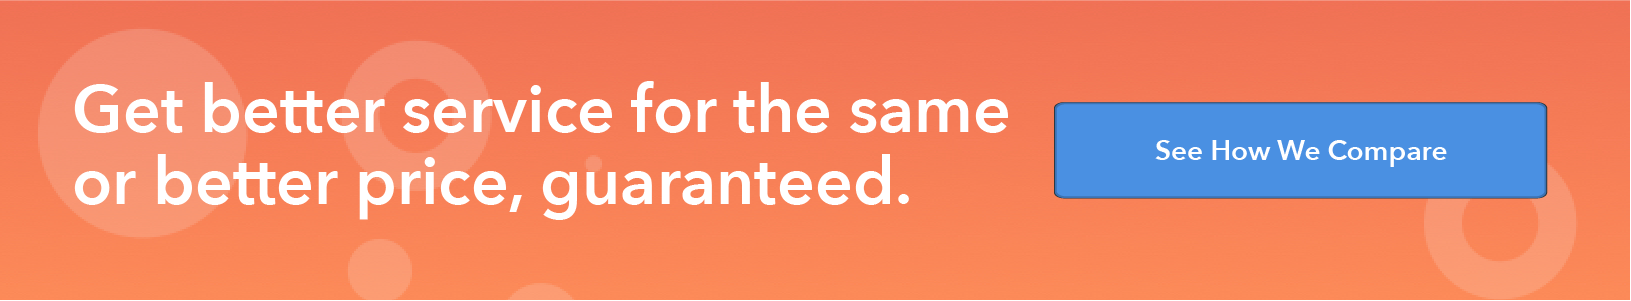 Get better service for the same or better price, guaranteed. See how we compare.